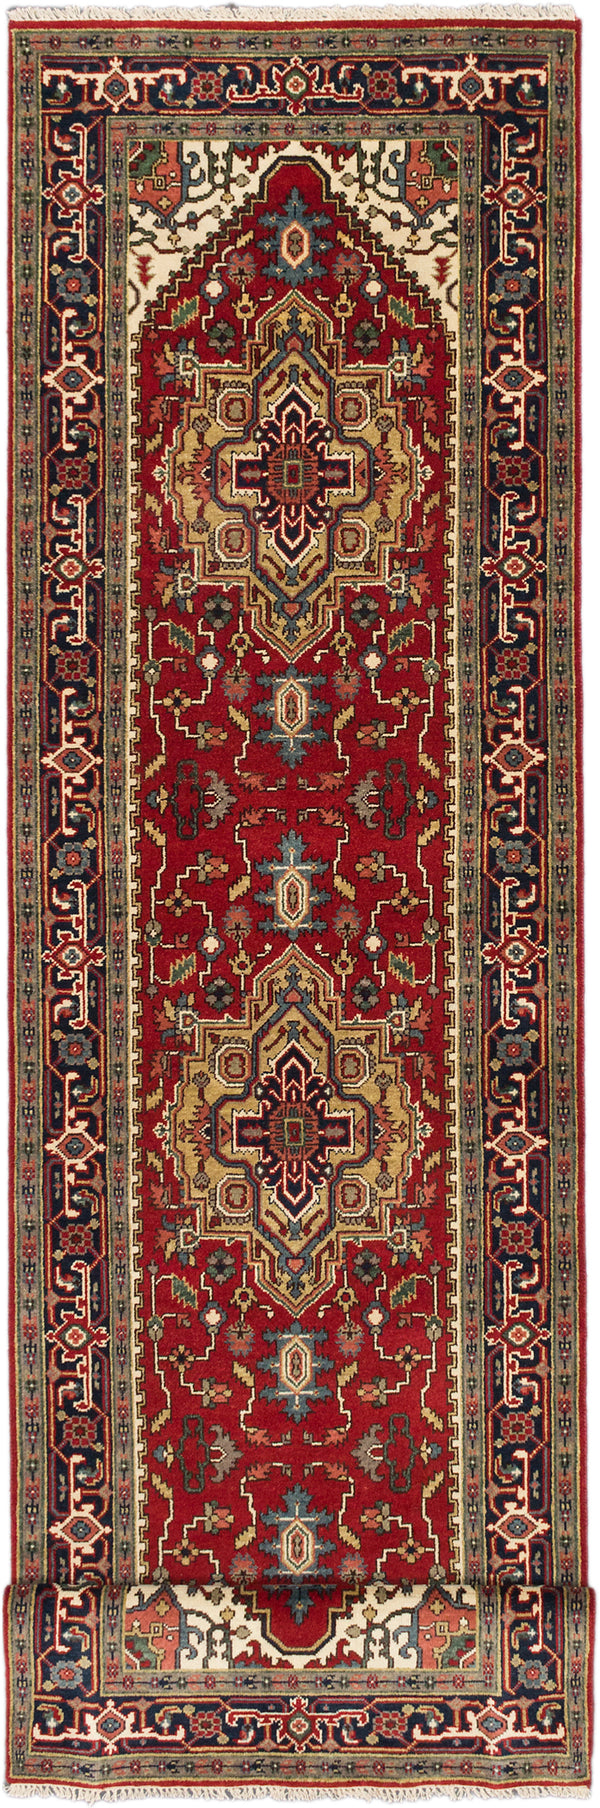 Hand-knotted Indian Traditional Serapi-Heritage Runner rug  Dark Burgundy 4 x 19.8